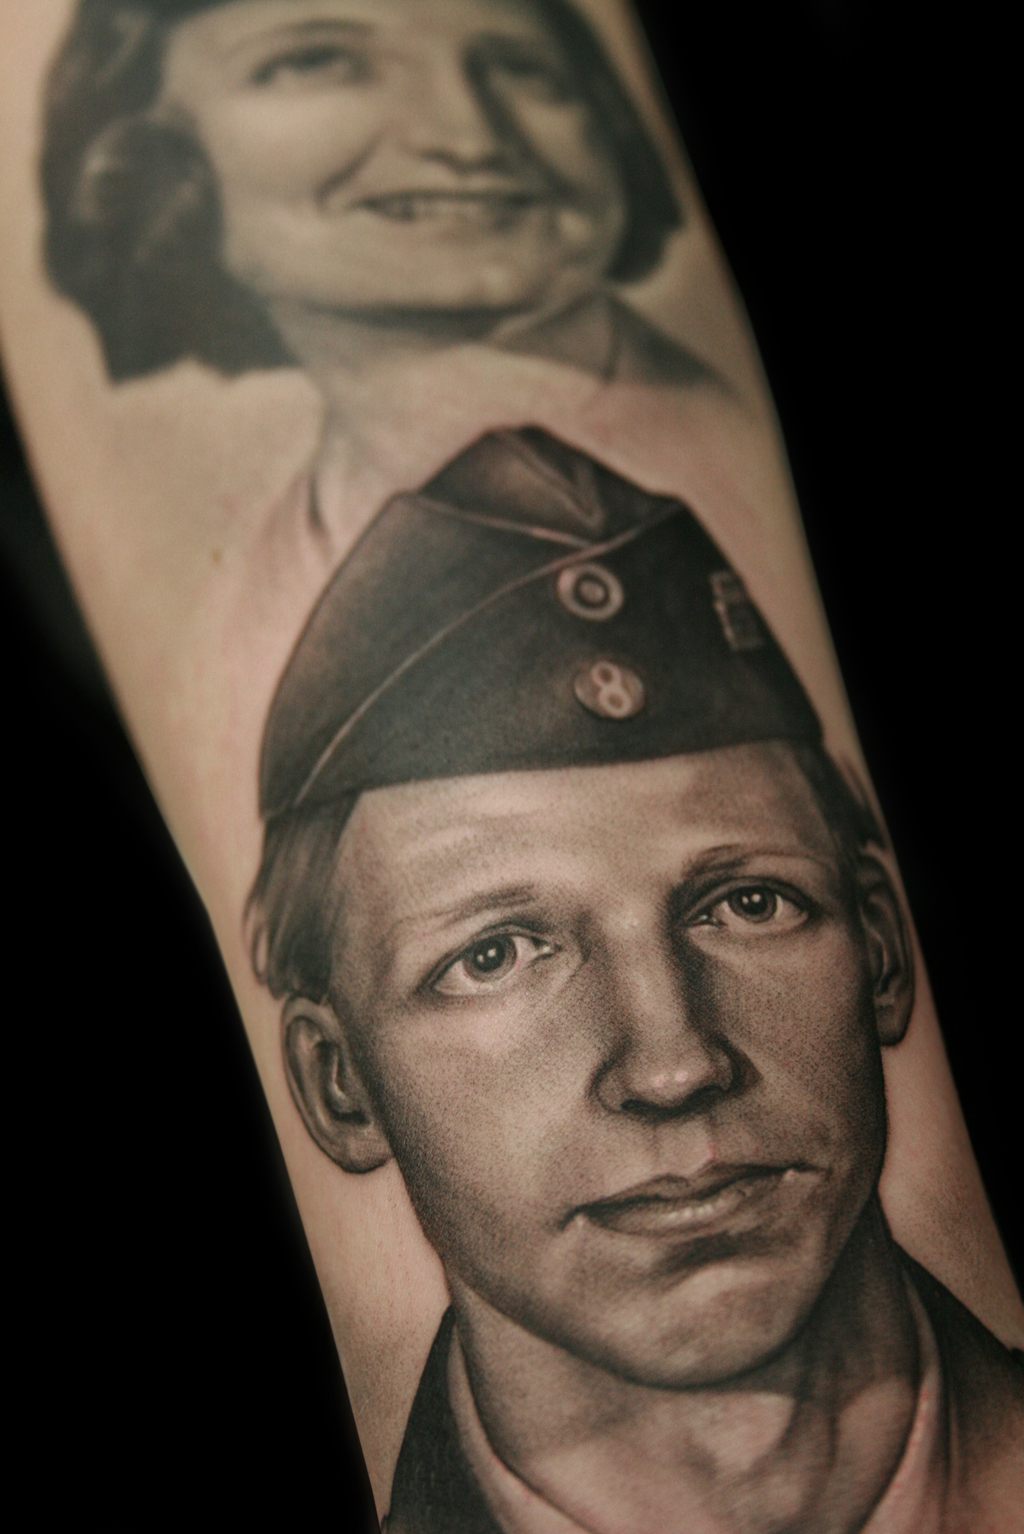 I want a tattoo done of my granddaddy when he was in the military he was and always will be my hero original